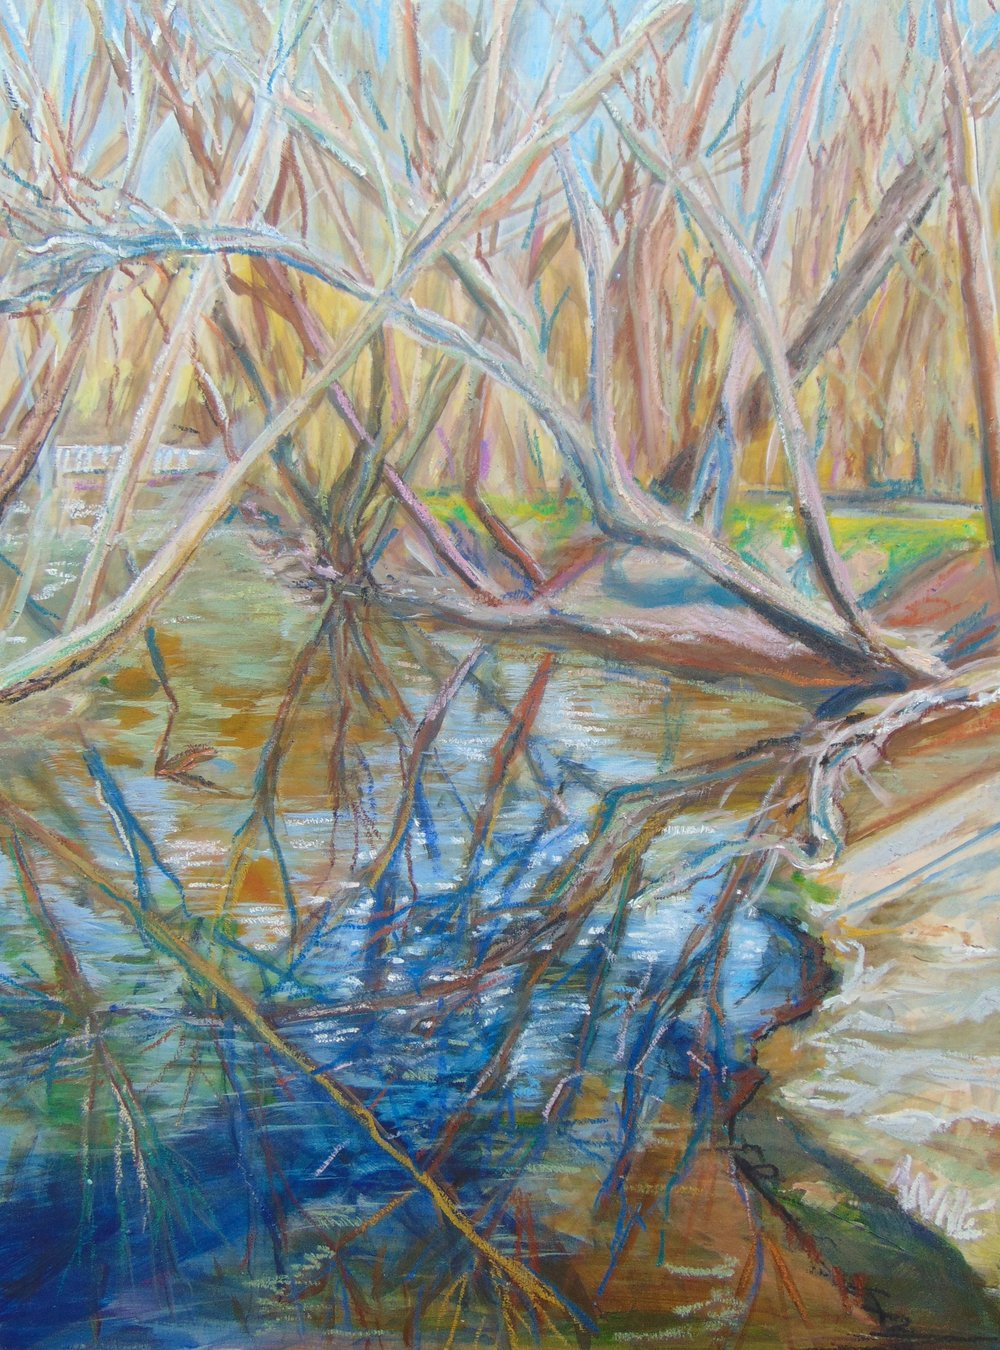 """Beargrass Reflected"" by Anne Borders, 16x12in, Acrylic and Oil Pastel on Wood Panel, $600 